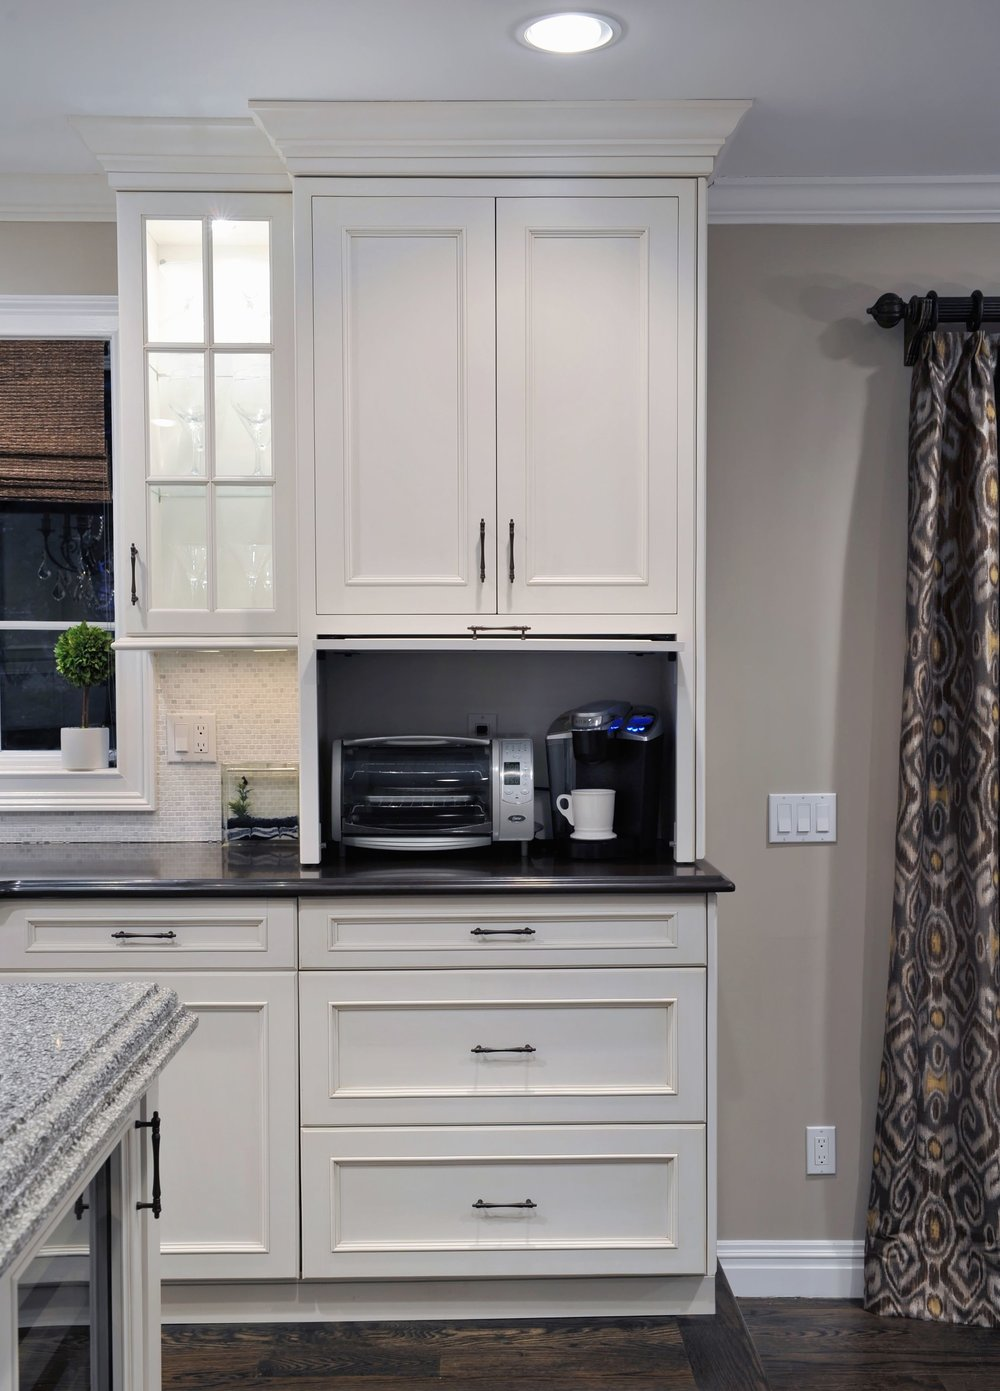 Transitional style kitchen with upper cabinets and pull out drawer